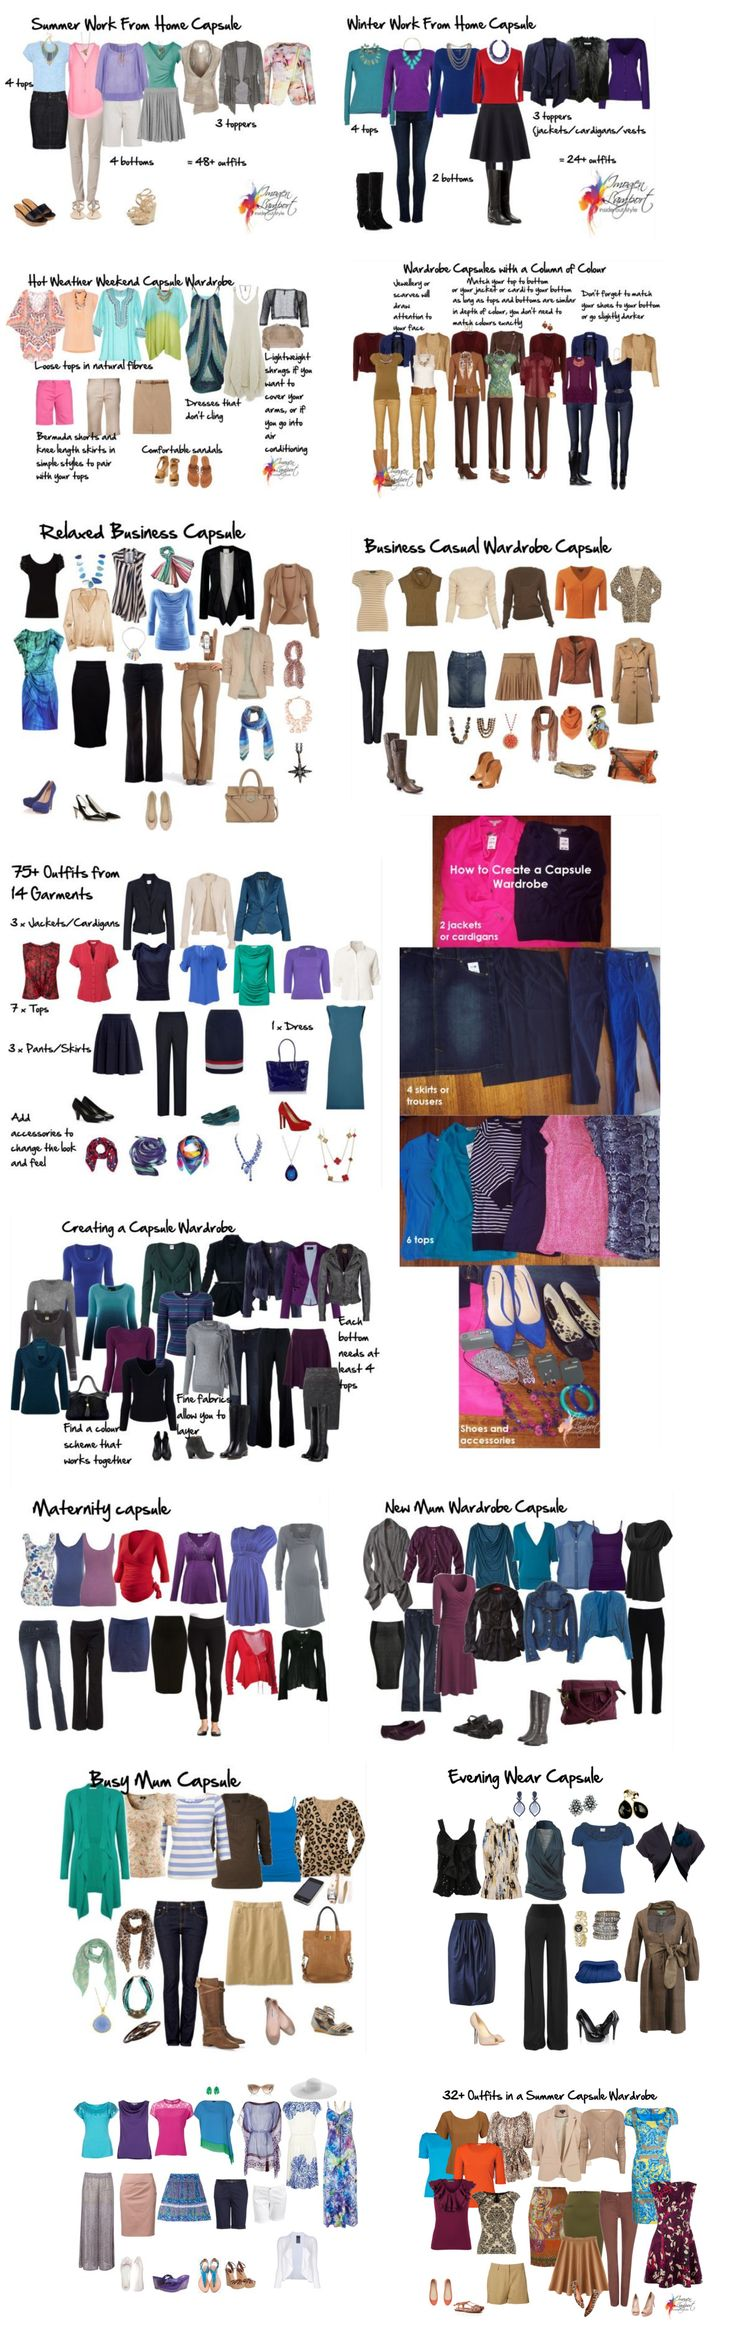 Multiple Capsule Wardrobe examples - Capsule wardrobe, Imogen Lamport, Wardrobe Therapy, Inside out Style blog, Bespoke Image, Image Consultant, Colour Analysis